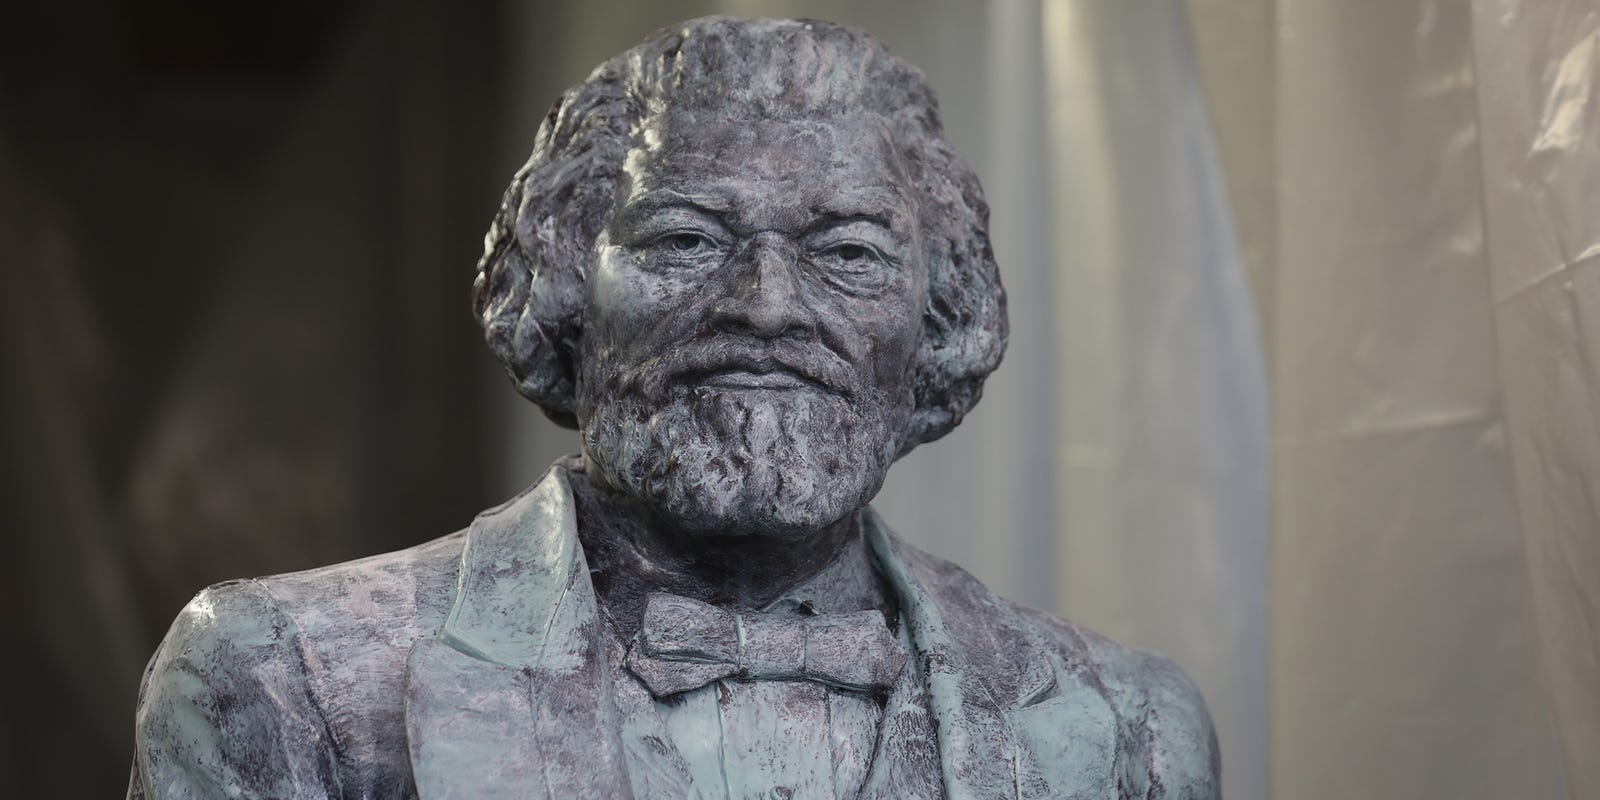 Frederick Douglass statue in New York vandalized on anniversary weekend of 'What to the Slave is the Fourth of July' speech